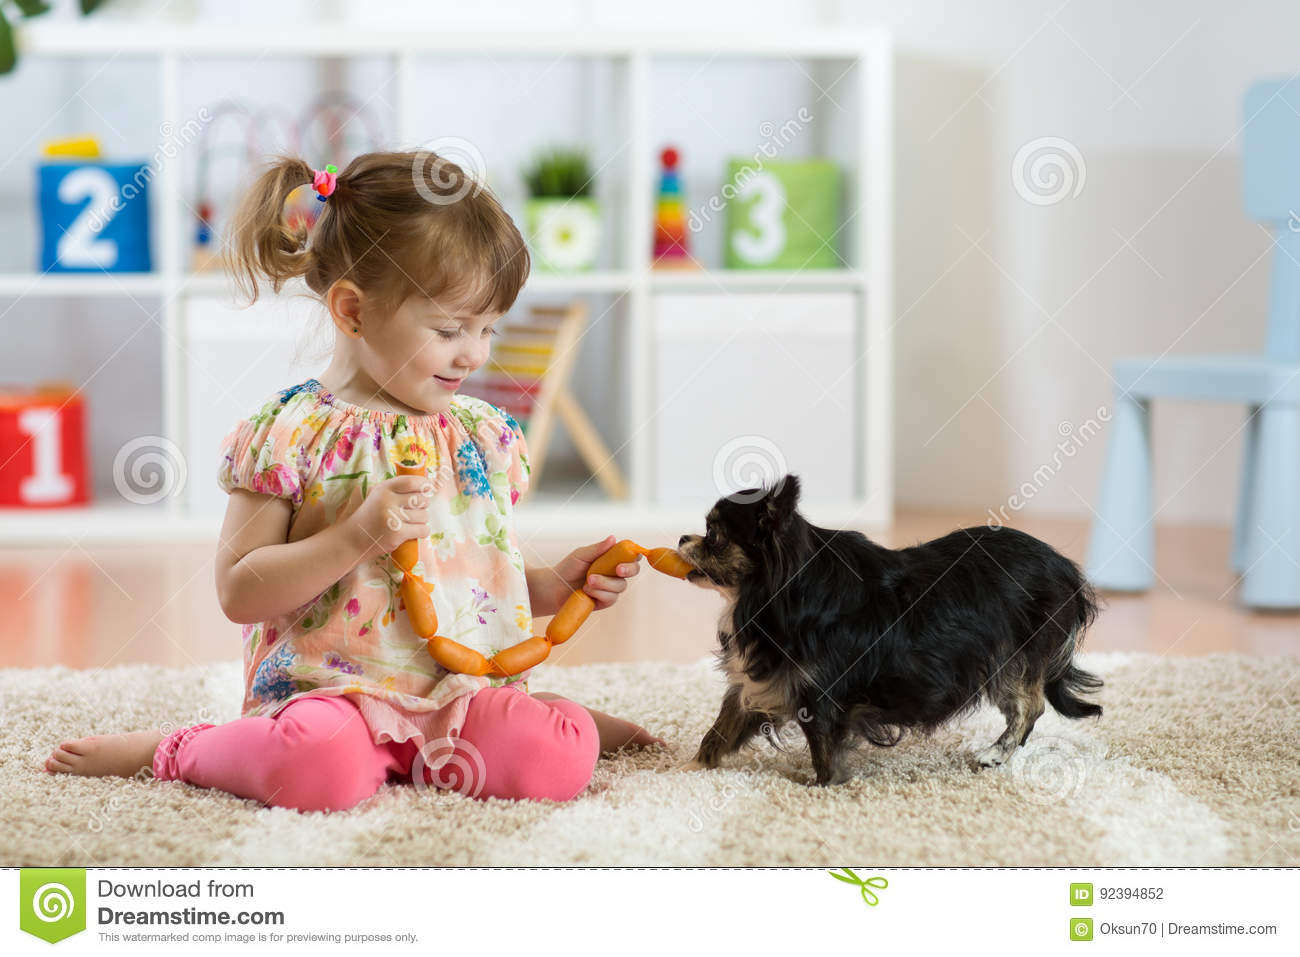 Child girl feeding sausages to her dog on floor in nursery.